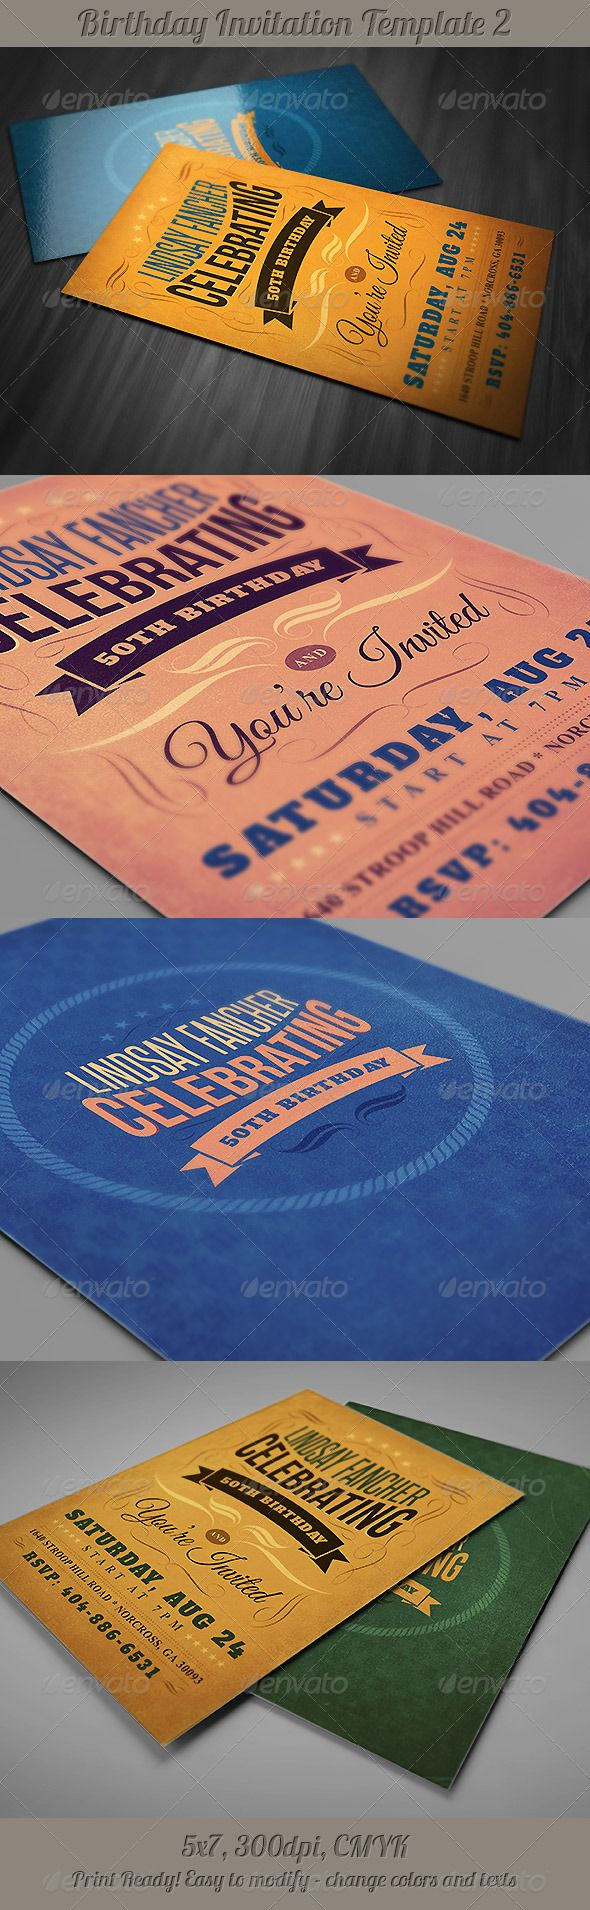 Retro Birthday Invitation Retro Birthday Card Templates And - Retro birthday invitation template